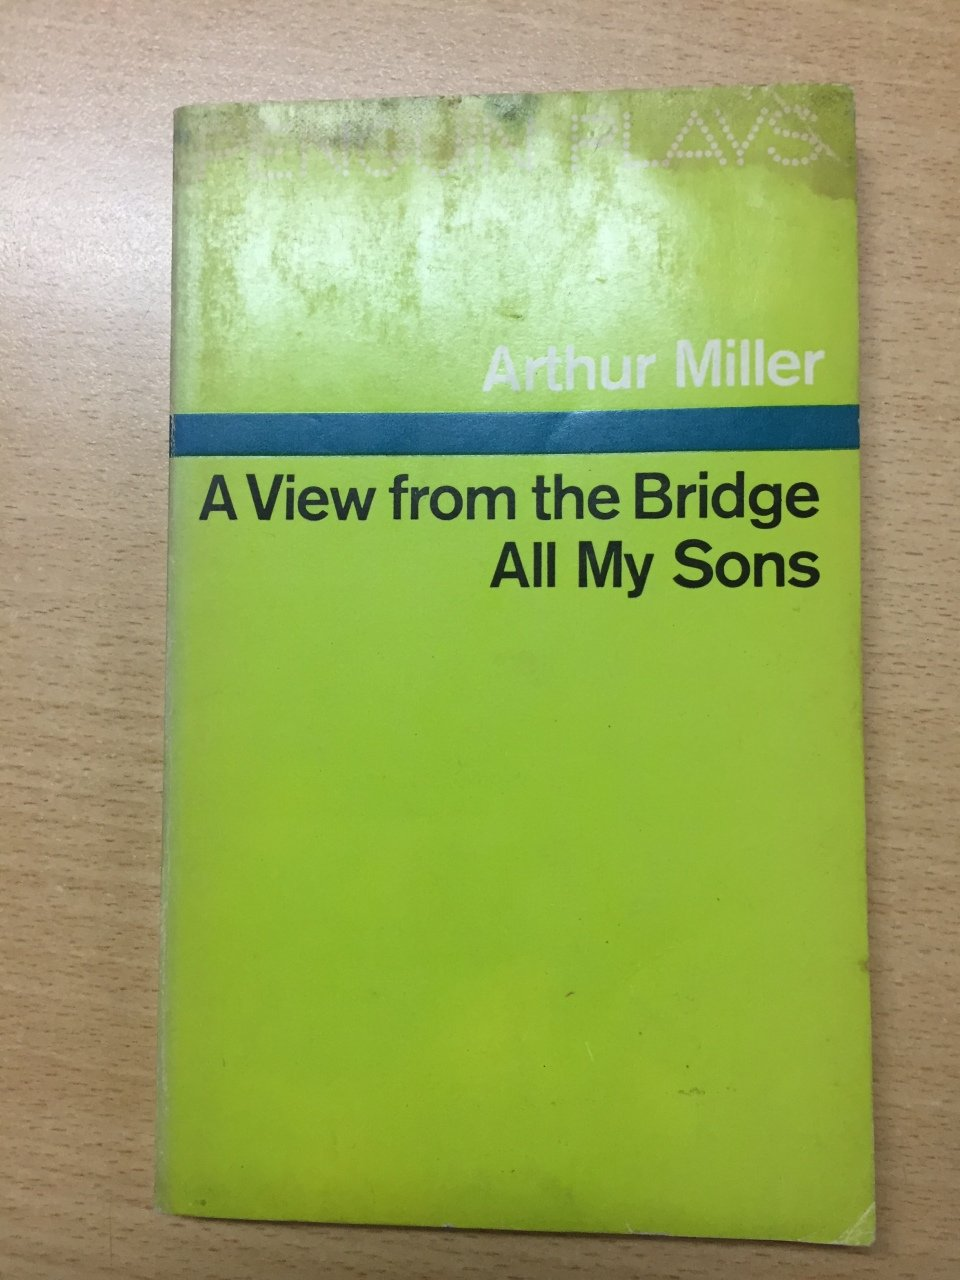 an analysis of arthur millers all my sons Like other works by arthur miller, all my sons is a critique of an overzealously capitalistic society it shows what happens when humans are ruled by greed it shows what happens when humans are ruled by greed.